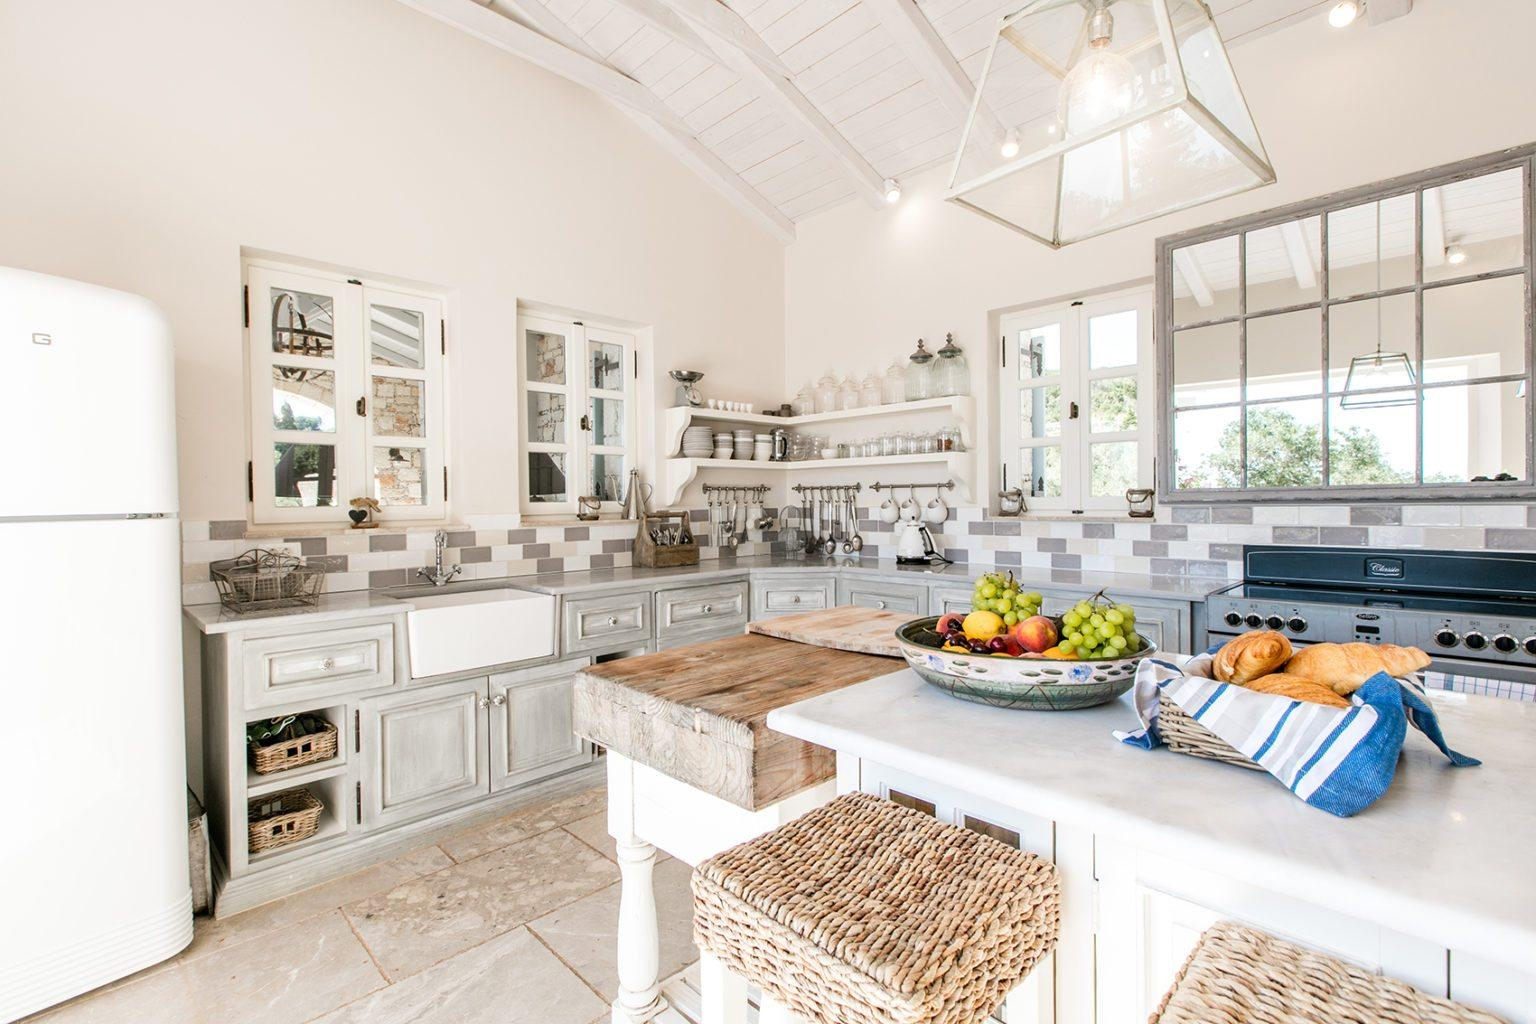 Conservative kitchen design with high wooden stools at the island